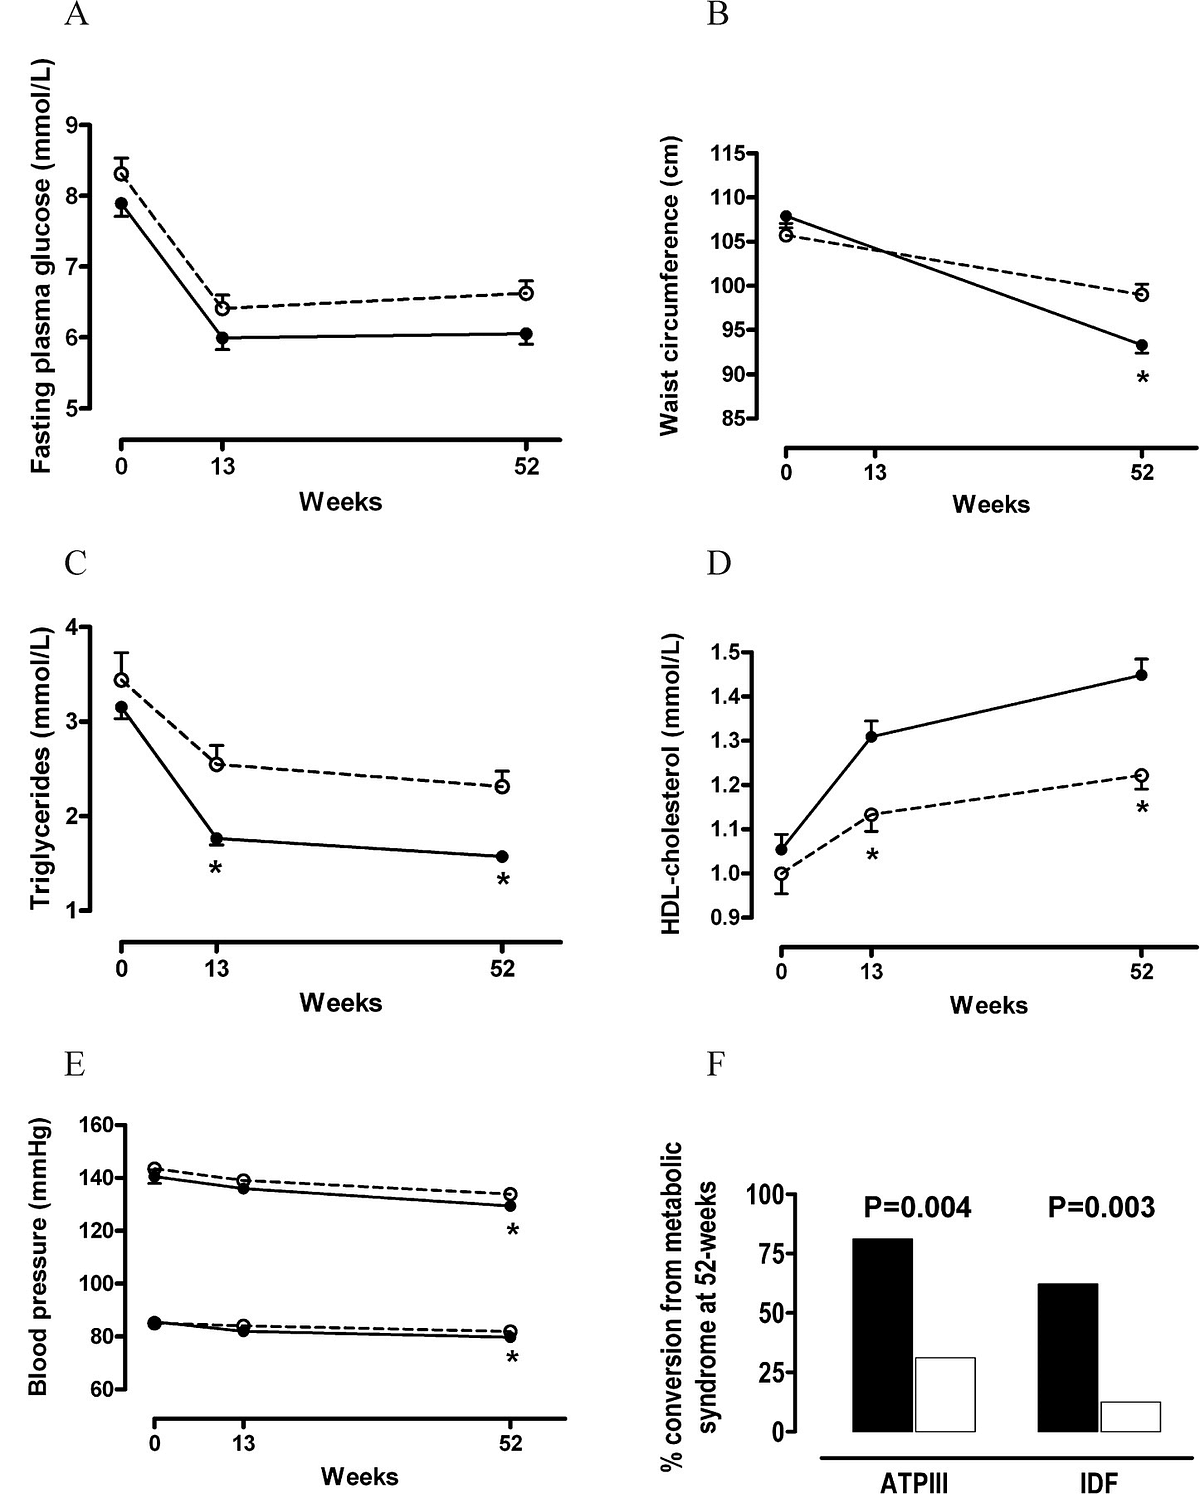 Figure 4 . Features of the metabolic syndrome and metabolic syndrome conversion rate during the period of study. (A) Fasting plasma sugar, (B) waist circumference, (C) triglycerides, (D) high‐density lipoprotein (HDL) cholesterol, (E)systolic and diastolic blood pressure, and (F)metabolic syndrome conversion rate after  52-week treatment with supervised D&E (white circles and white boxes) or in conjunction with transdermal testosterone administration (black circles and black boxes). Data represent mean and SE. ATP III indicates Adult Treatment Panel III; IDF, International Diabetes Federation; * P < .005.